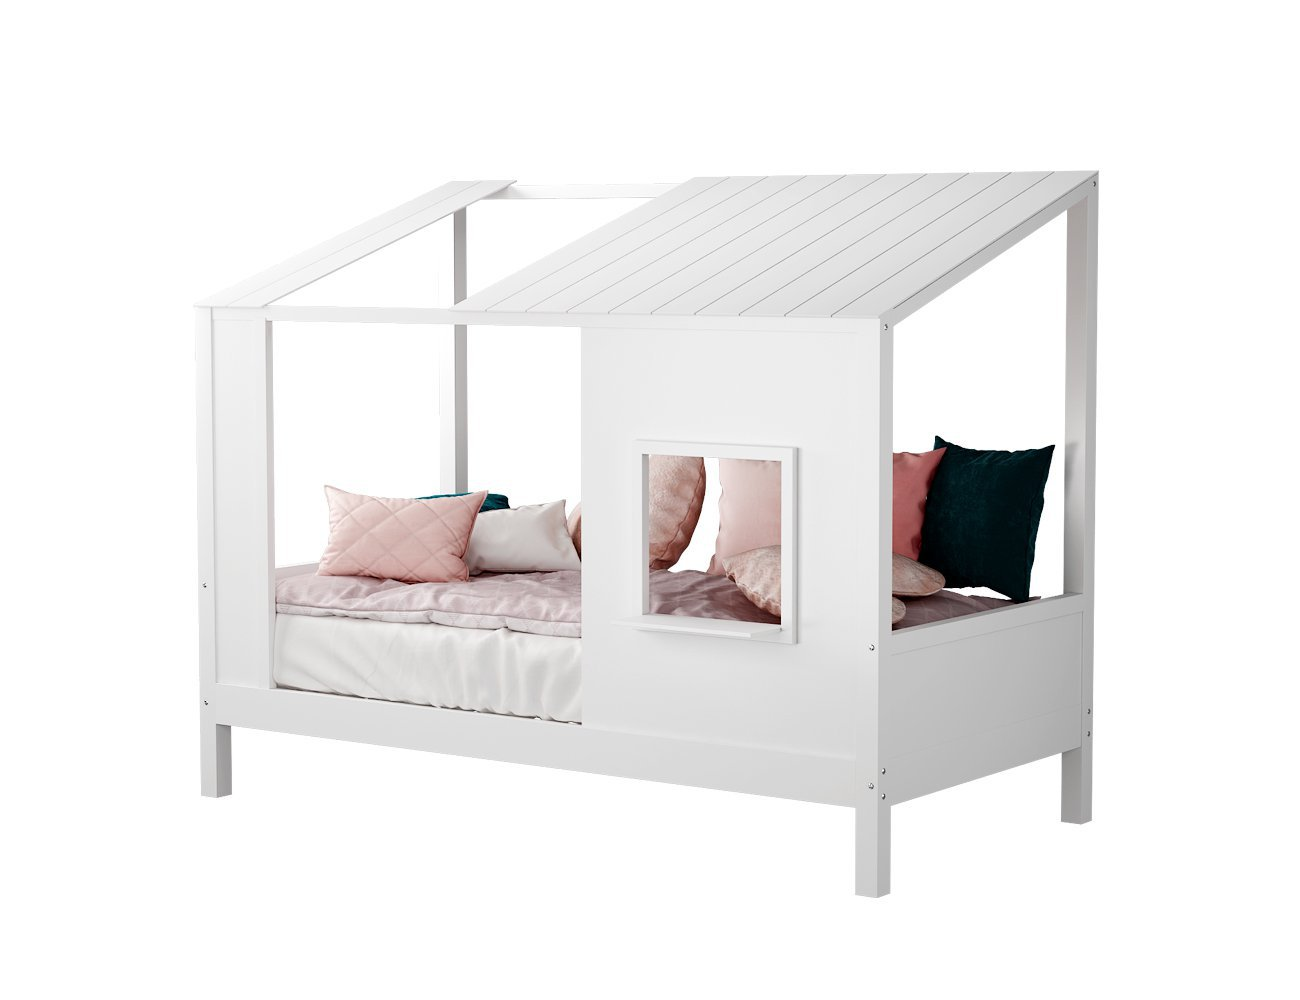 Jiro Kids King Single Bed Frame